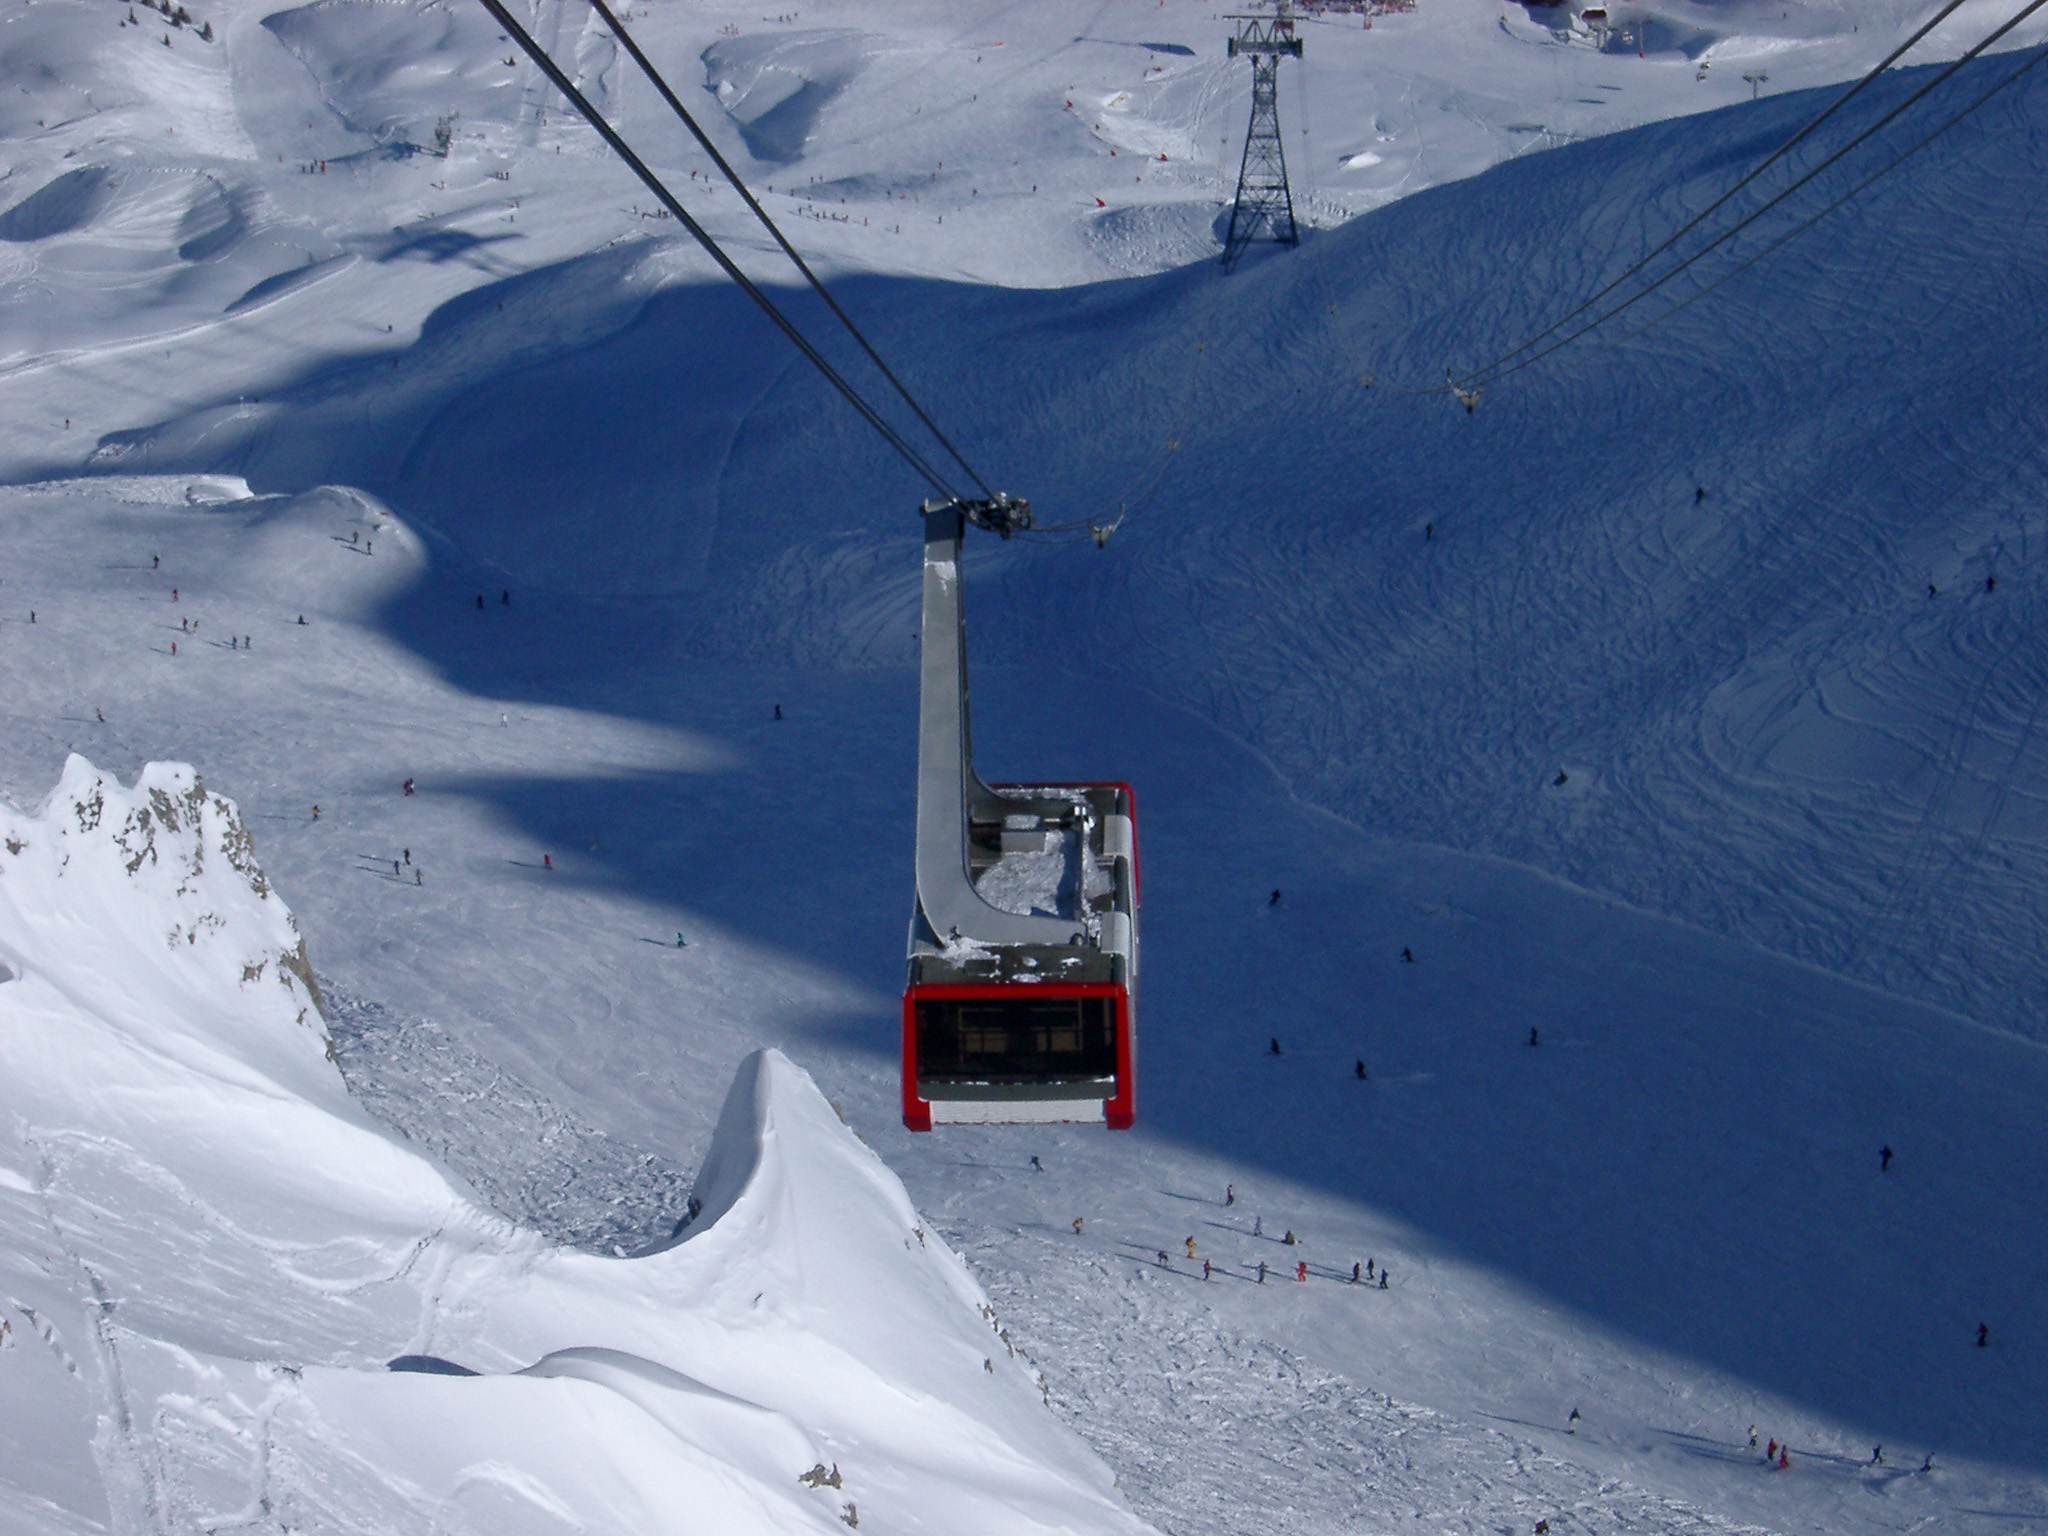 Riding with Cool Cable Car for Adventure Above Snow Field During Winter Season.